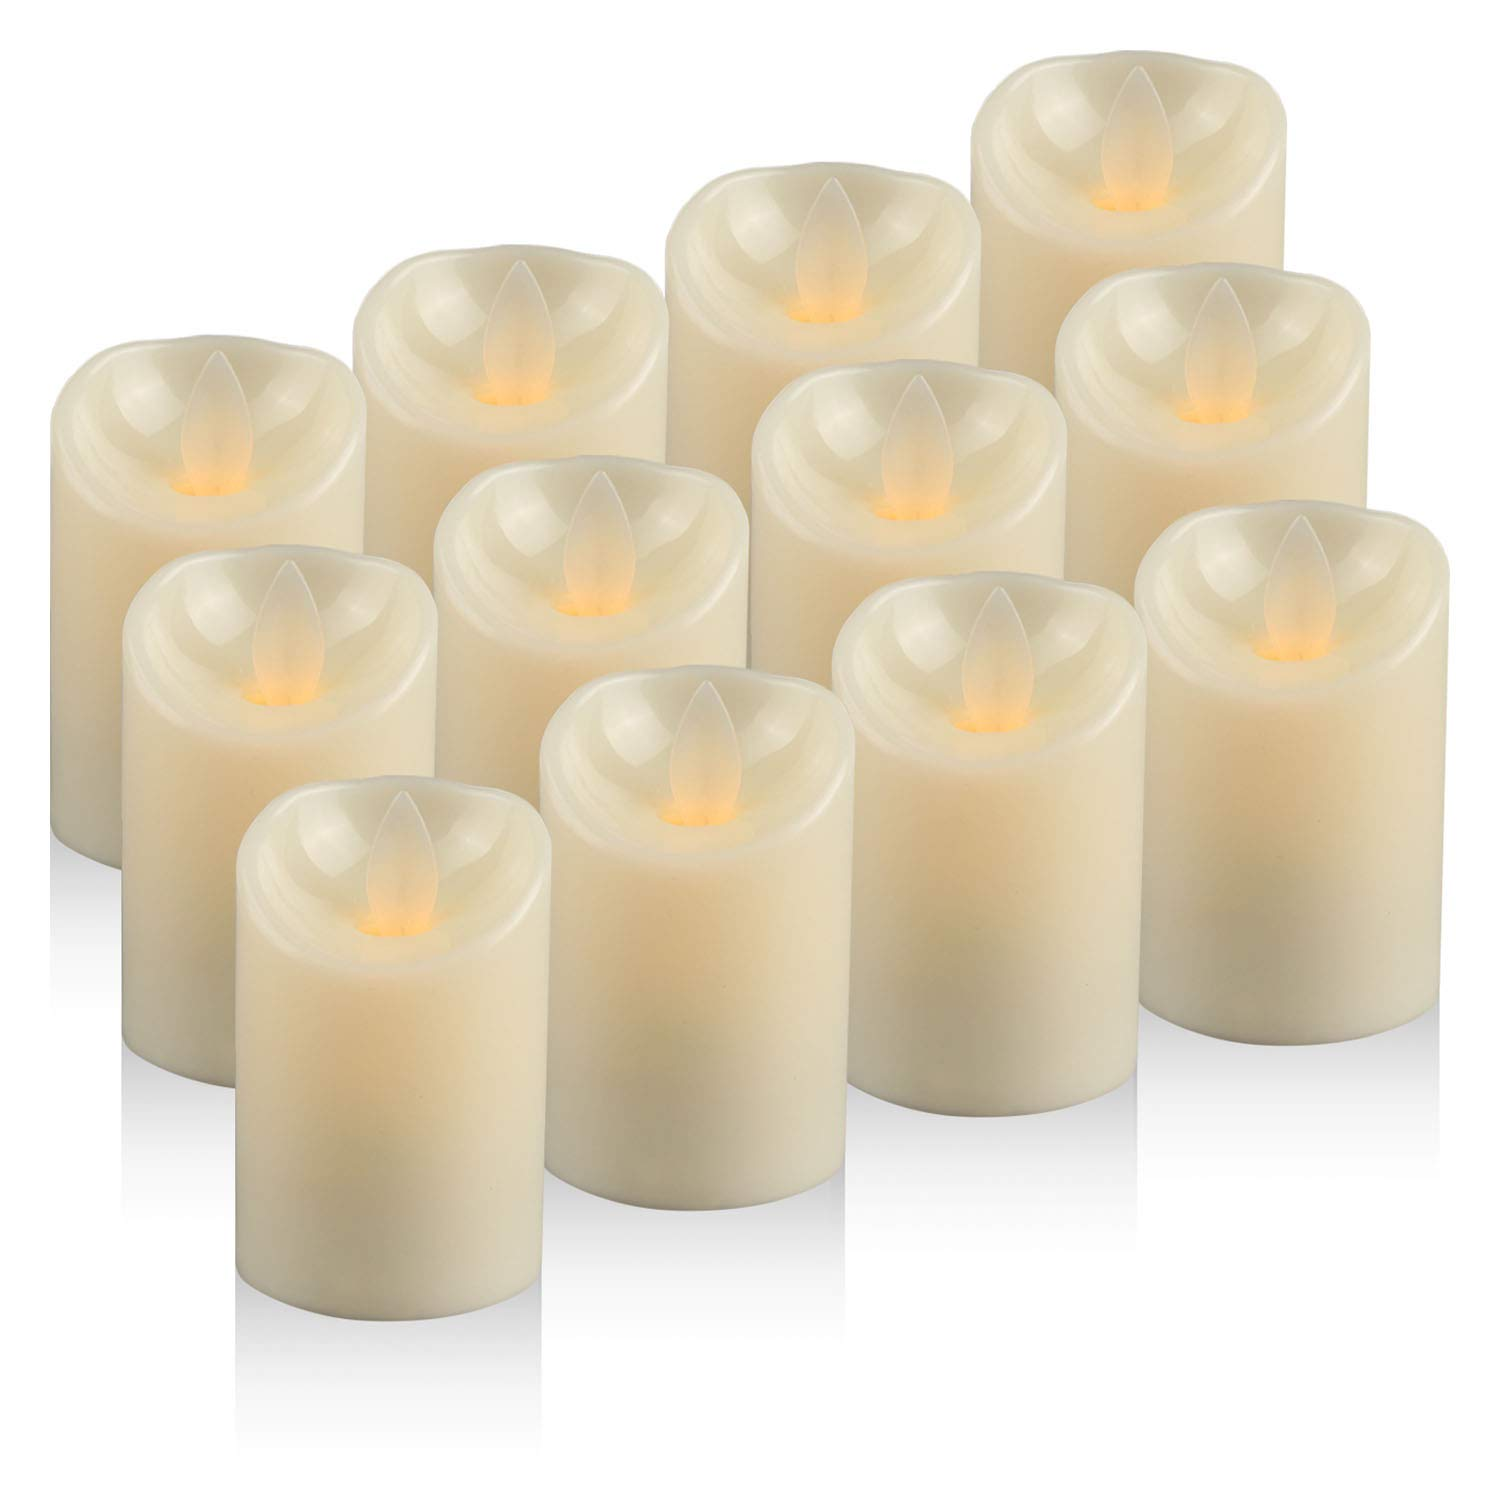 Unscented Realistic Tealight Candles in Warm White Pack of 12 Battery Operated Flickering Electric Candles D:2 X H:3 Moving Wick LED Candles Tea Light